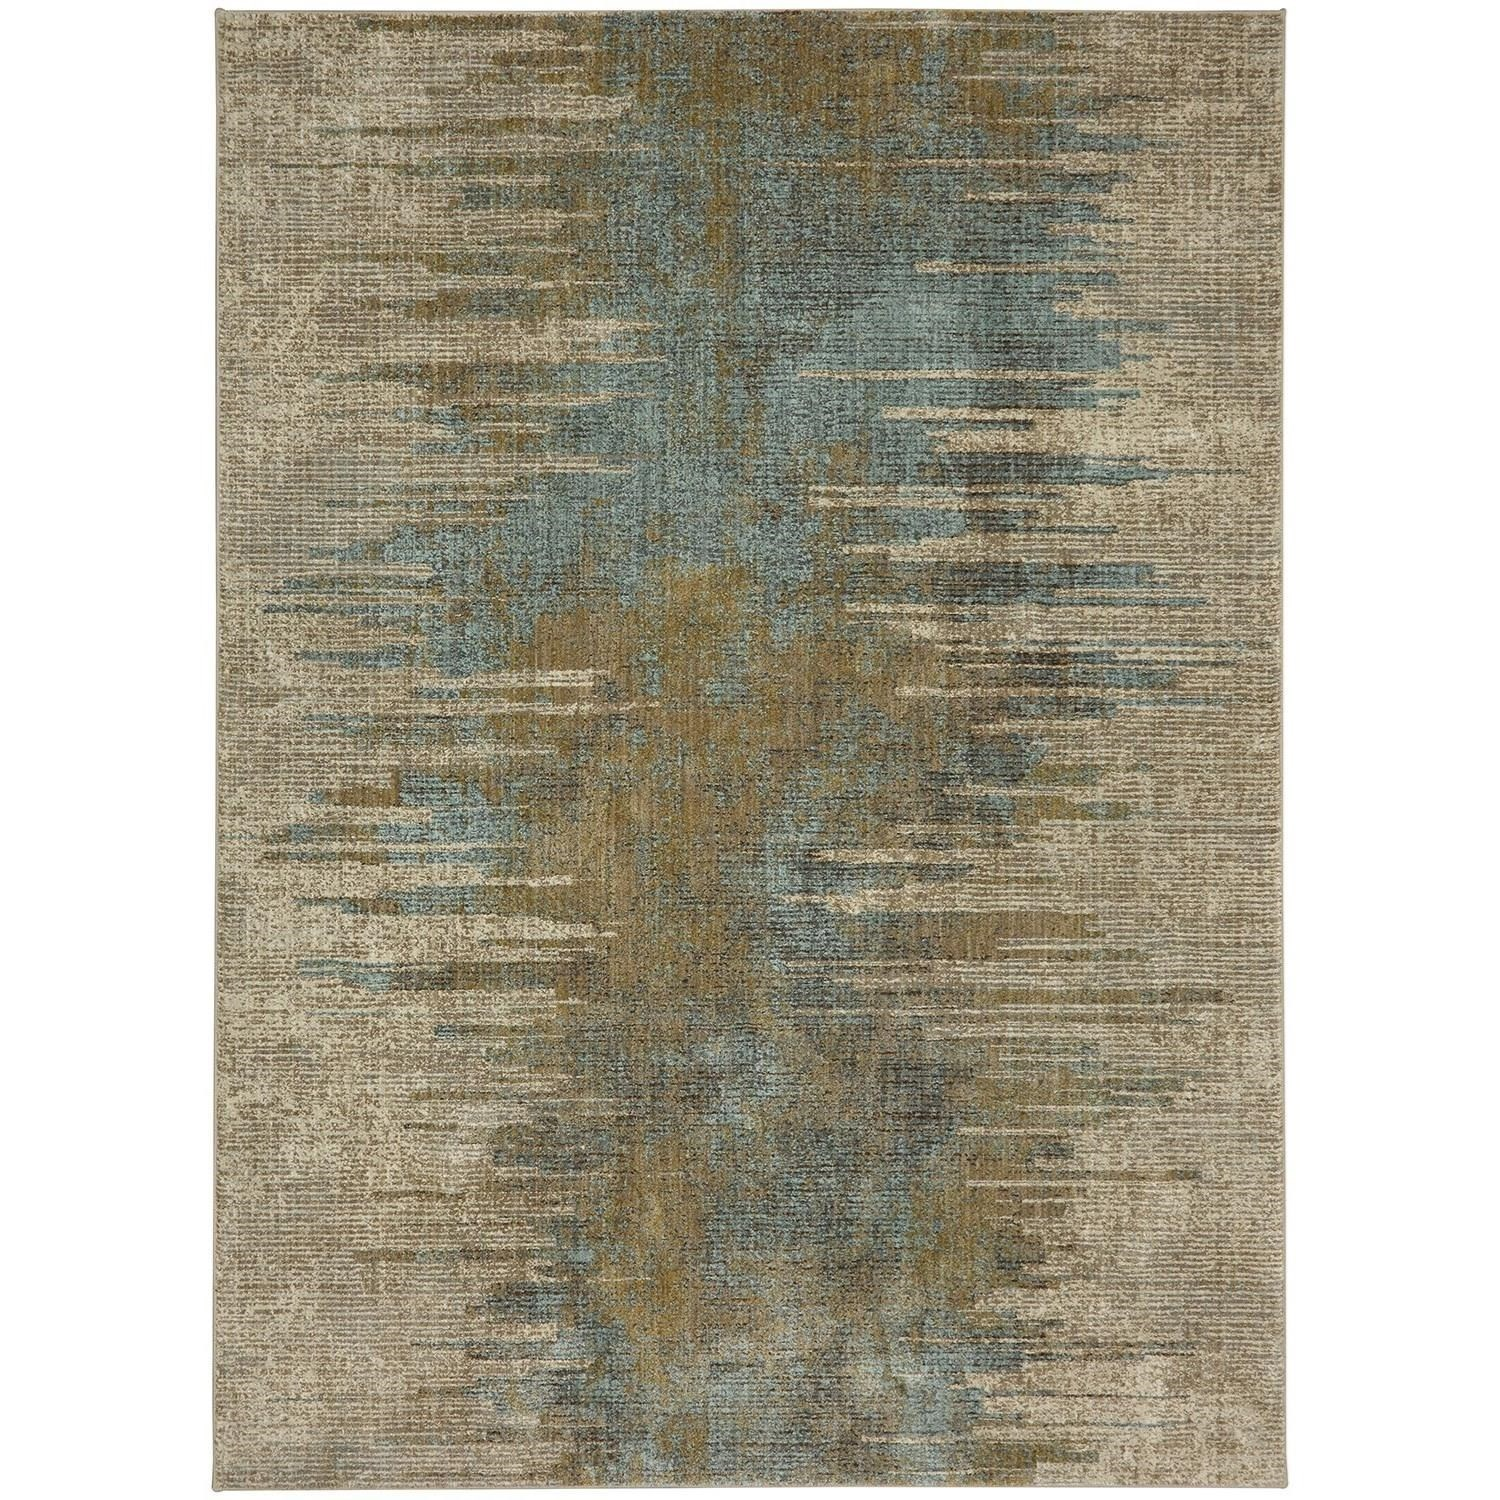 "Touchstone 9' 6""x12' 11"" Rectangle Abstract Area Rug by Karastan Rugs at Darvin Furniture"